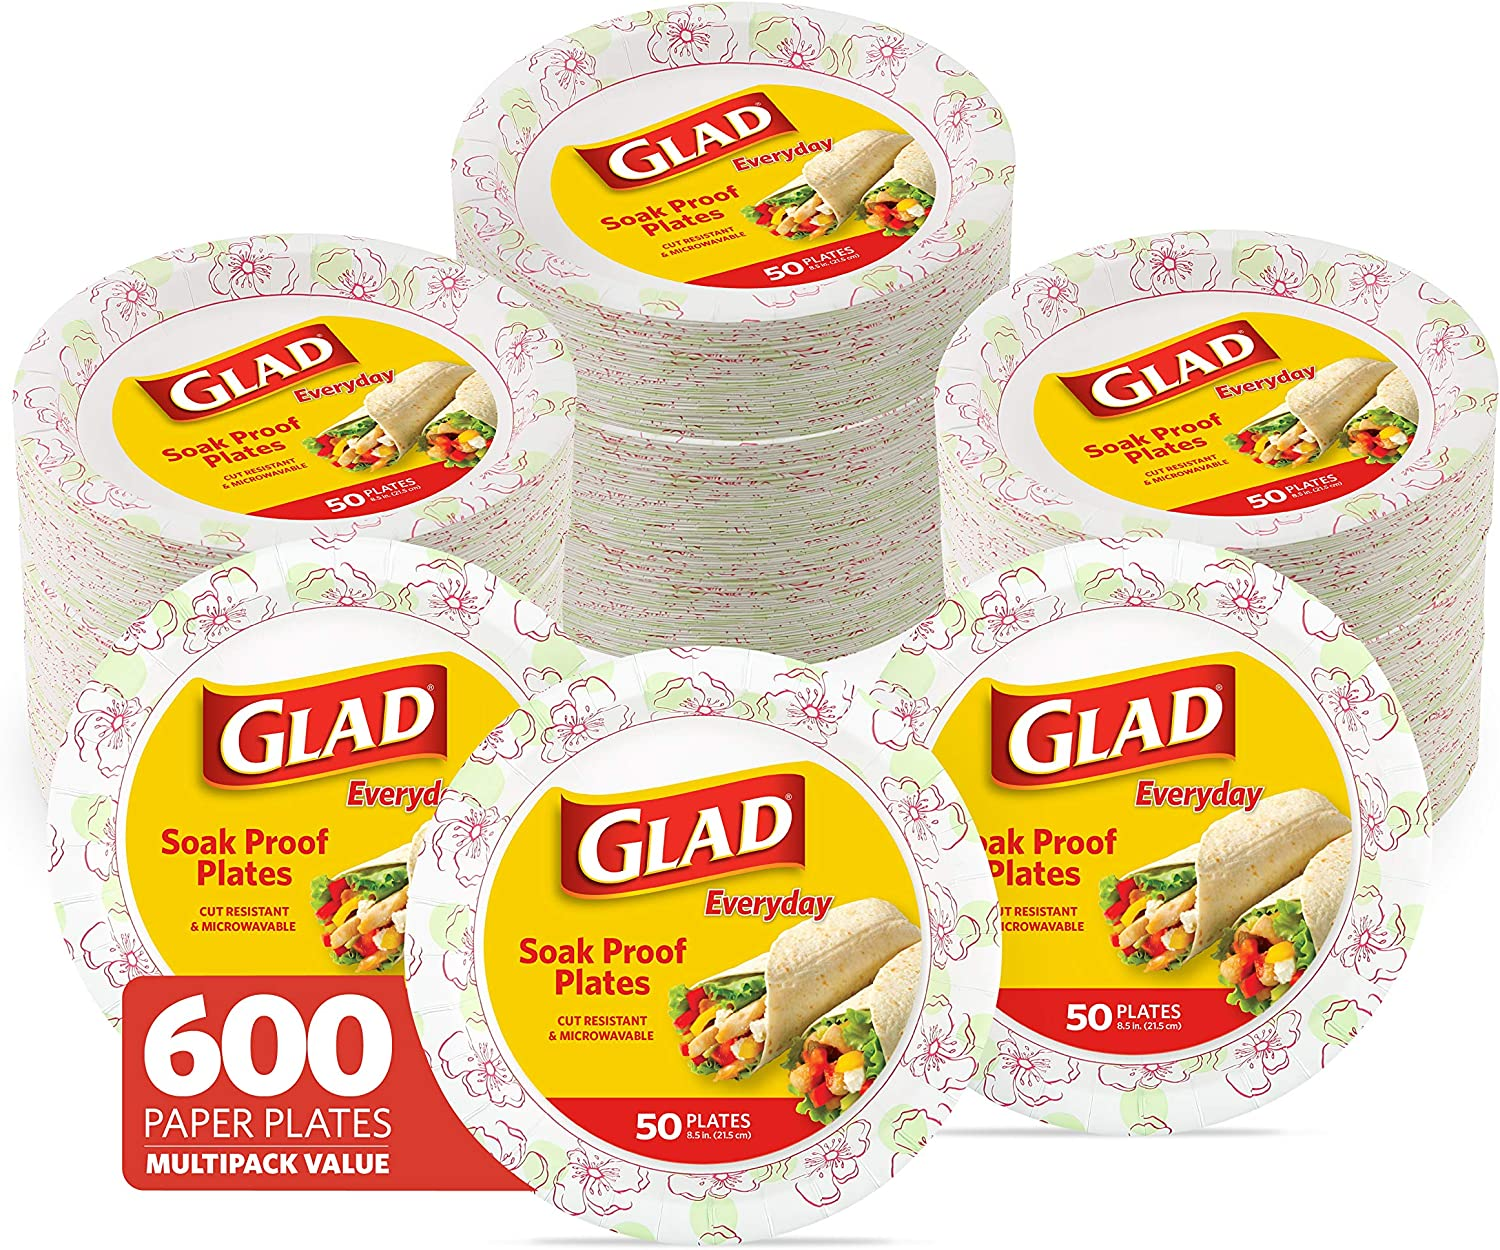 Glad Round Disposable Paper Plates for All Occasions | Soak Proof, Cut Proof, Microwaveable Heavy Duty Disposable Plates | 8.5